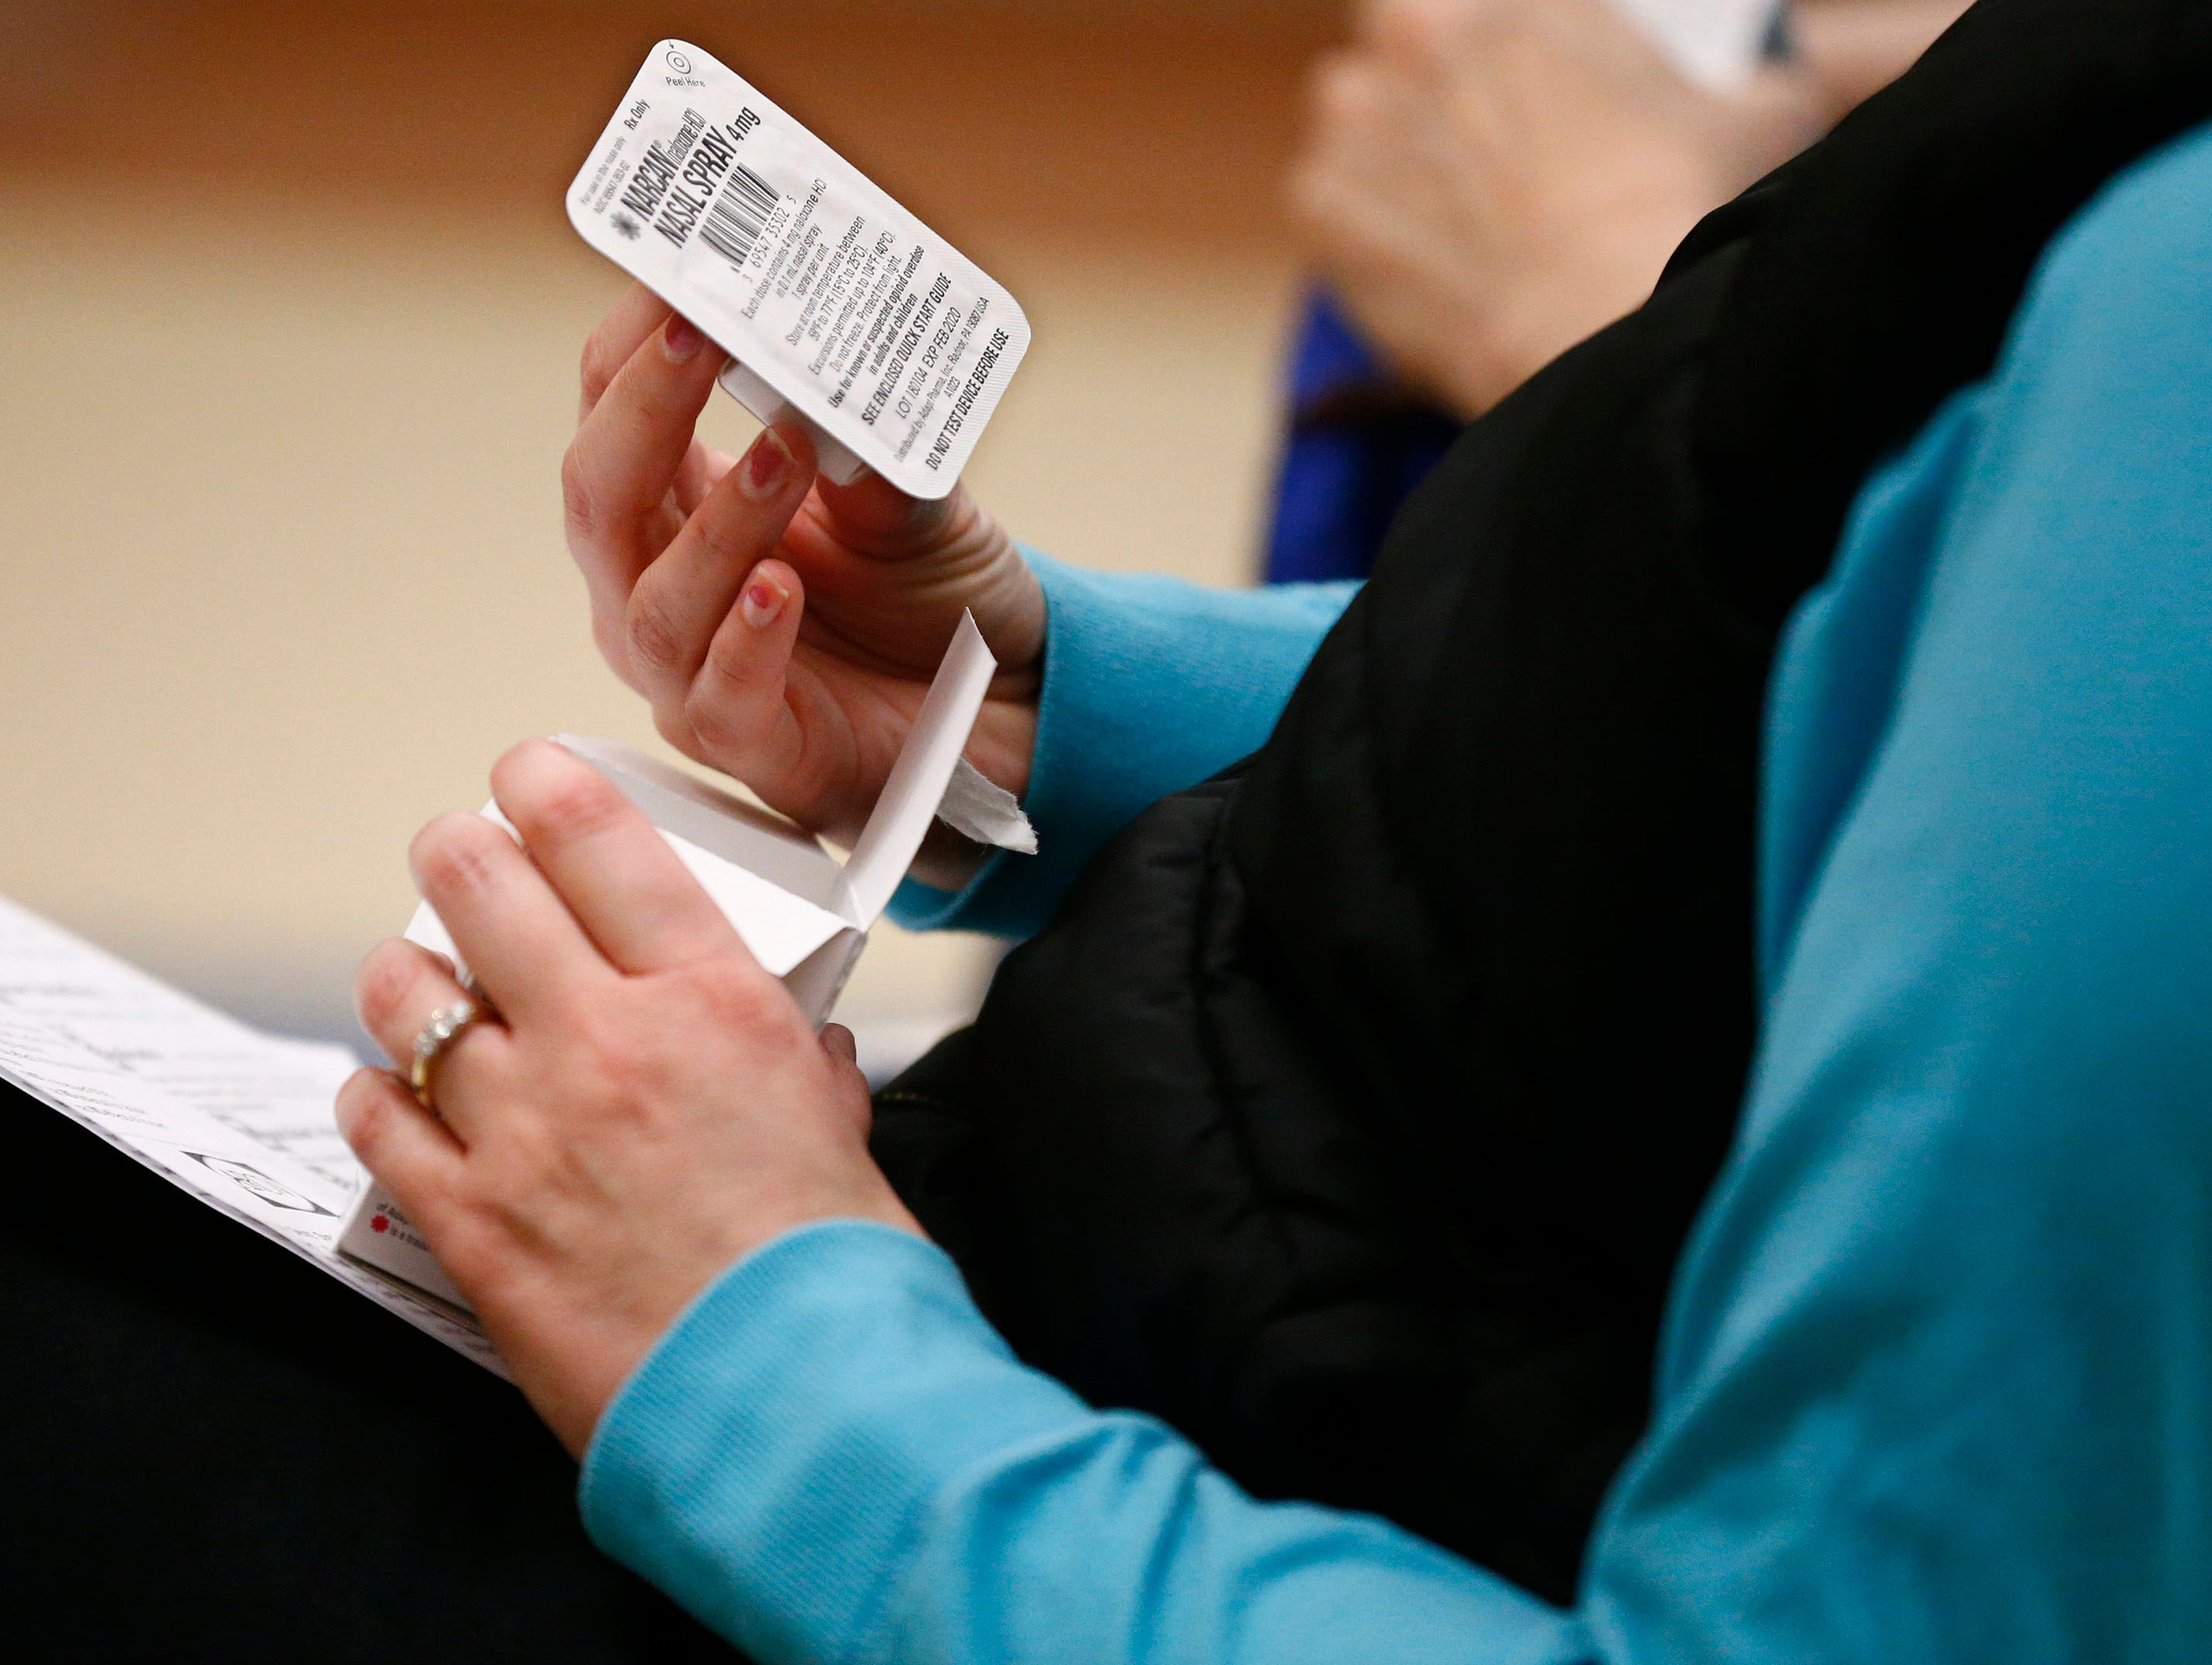 A student examines the nasal Narcan issued to a dozen students during an opiate overdose prevention workshop at the Salvation Army's Greenfield facility on Jan. 24.